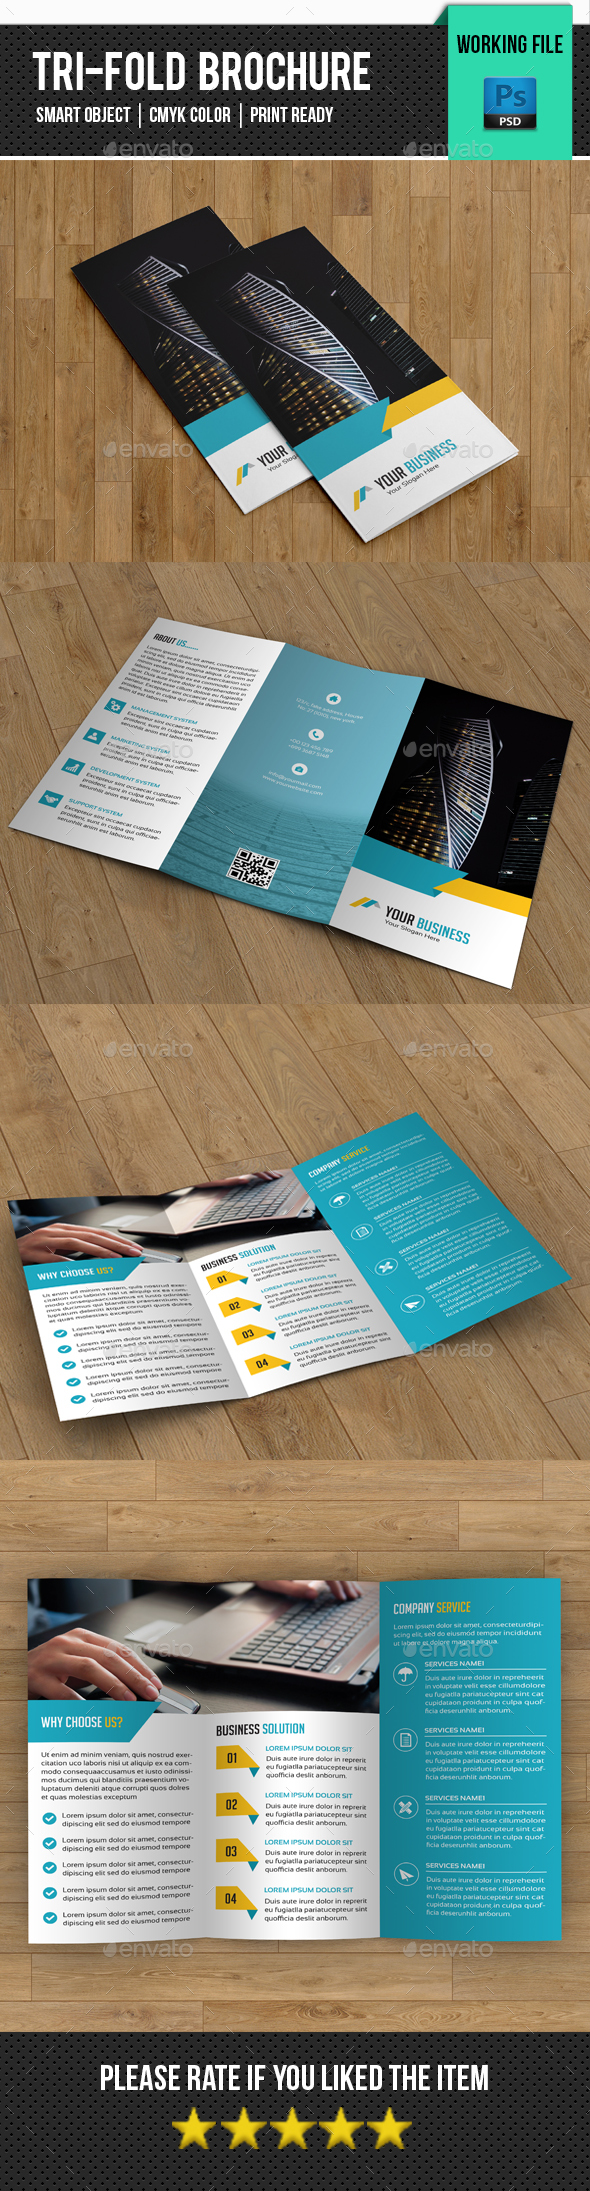 Corporate Trifold Brochure-V296 - Corporate Brochures